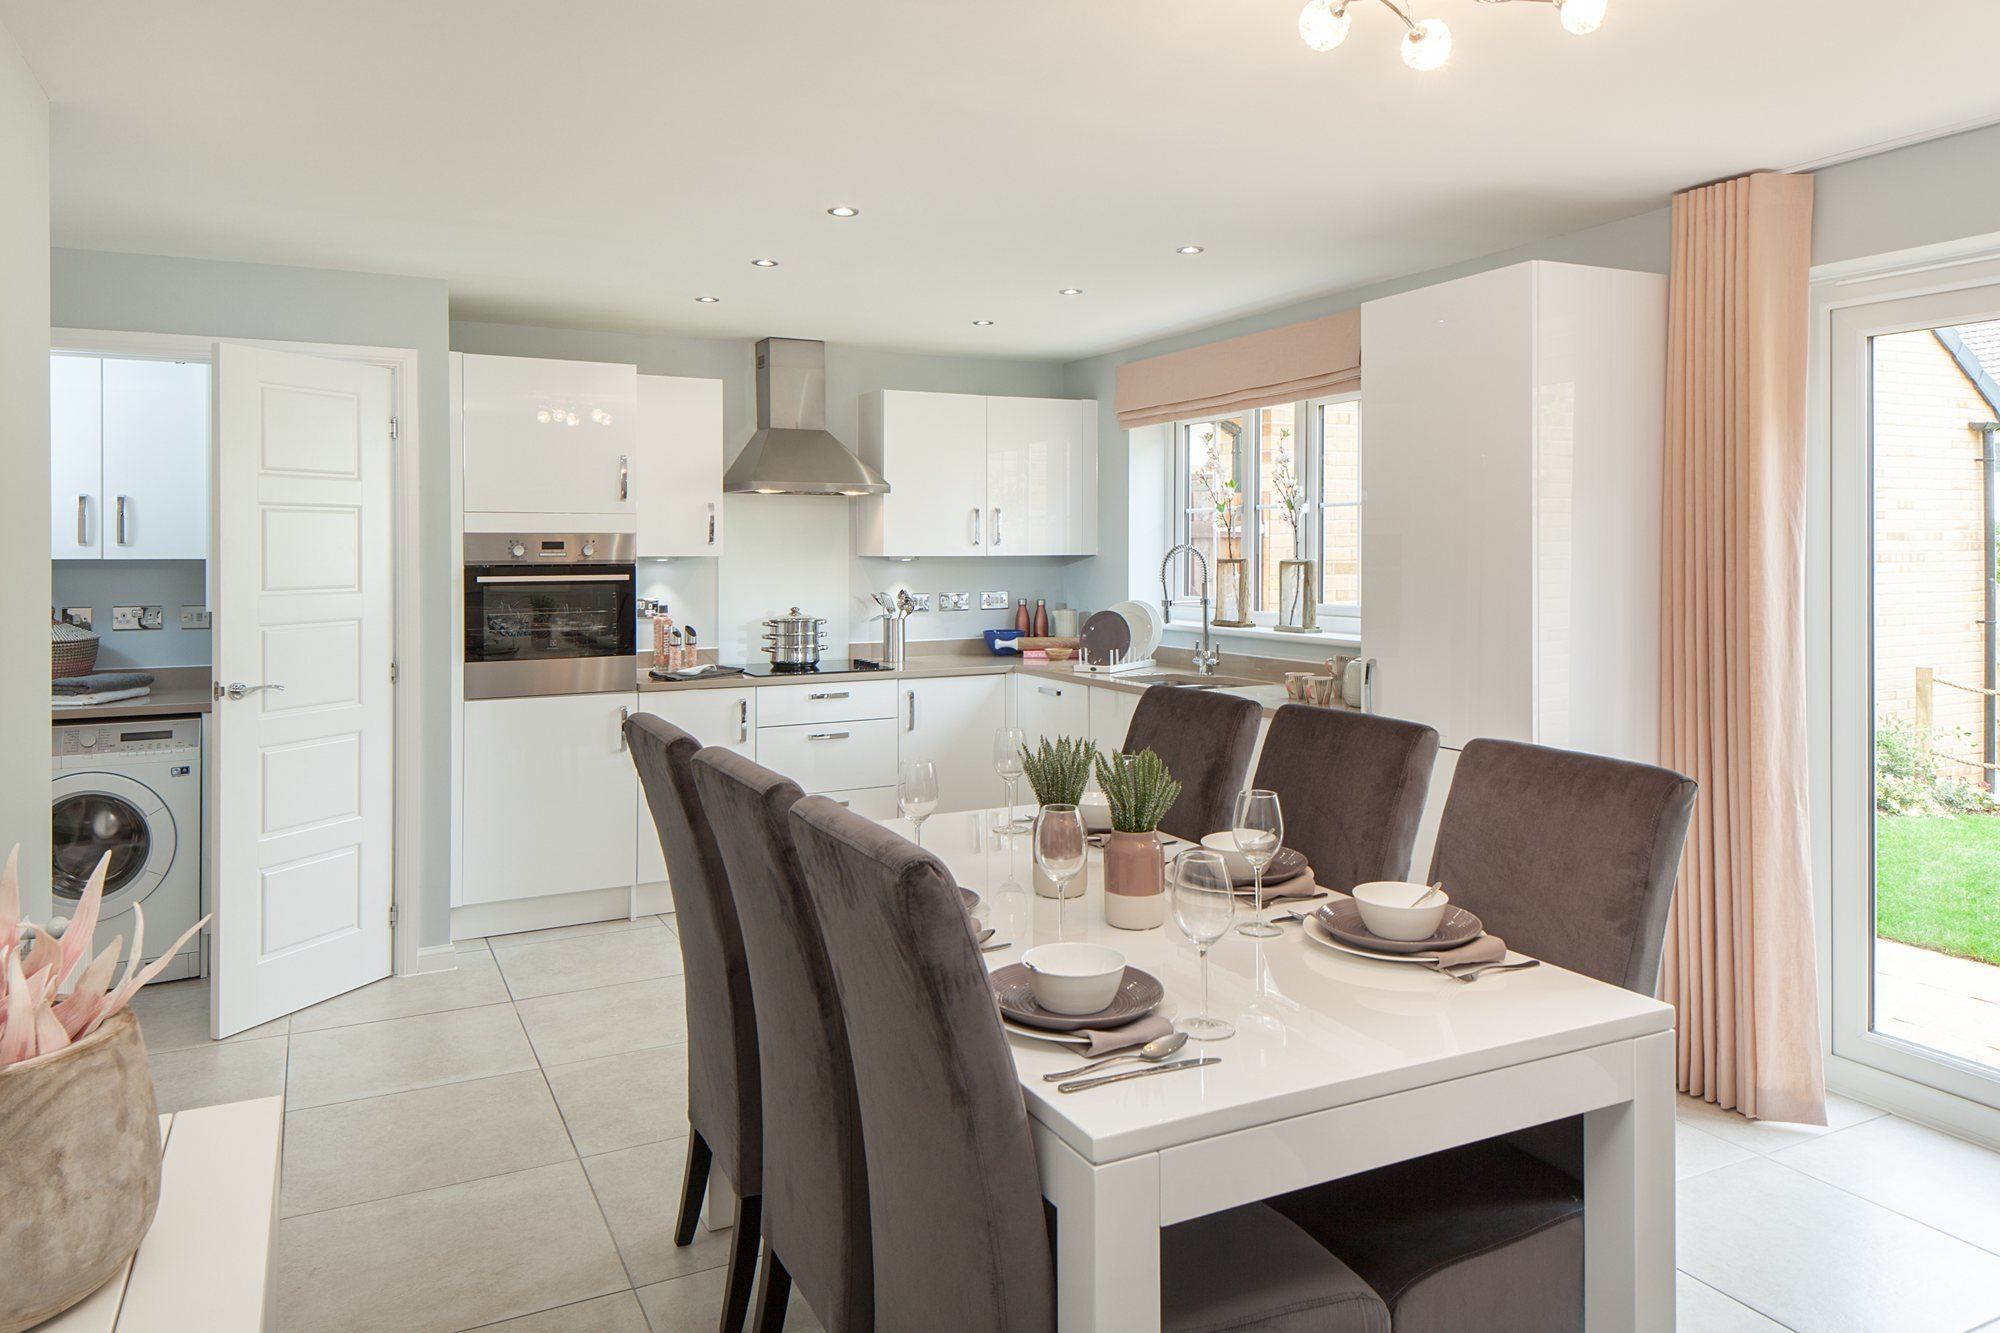 The Spinnings - PRESTON - new homes by Barratt Homes